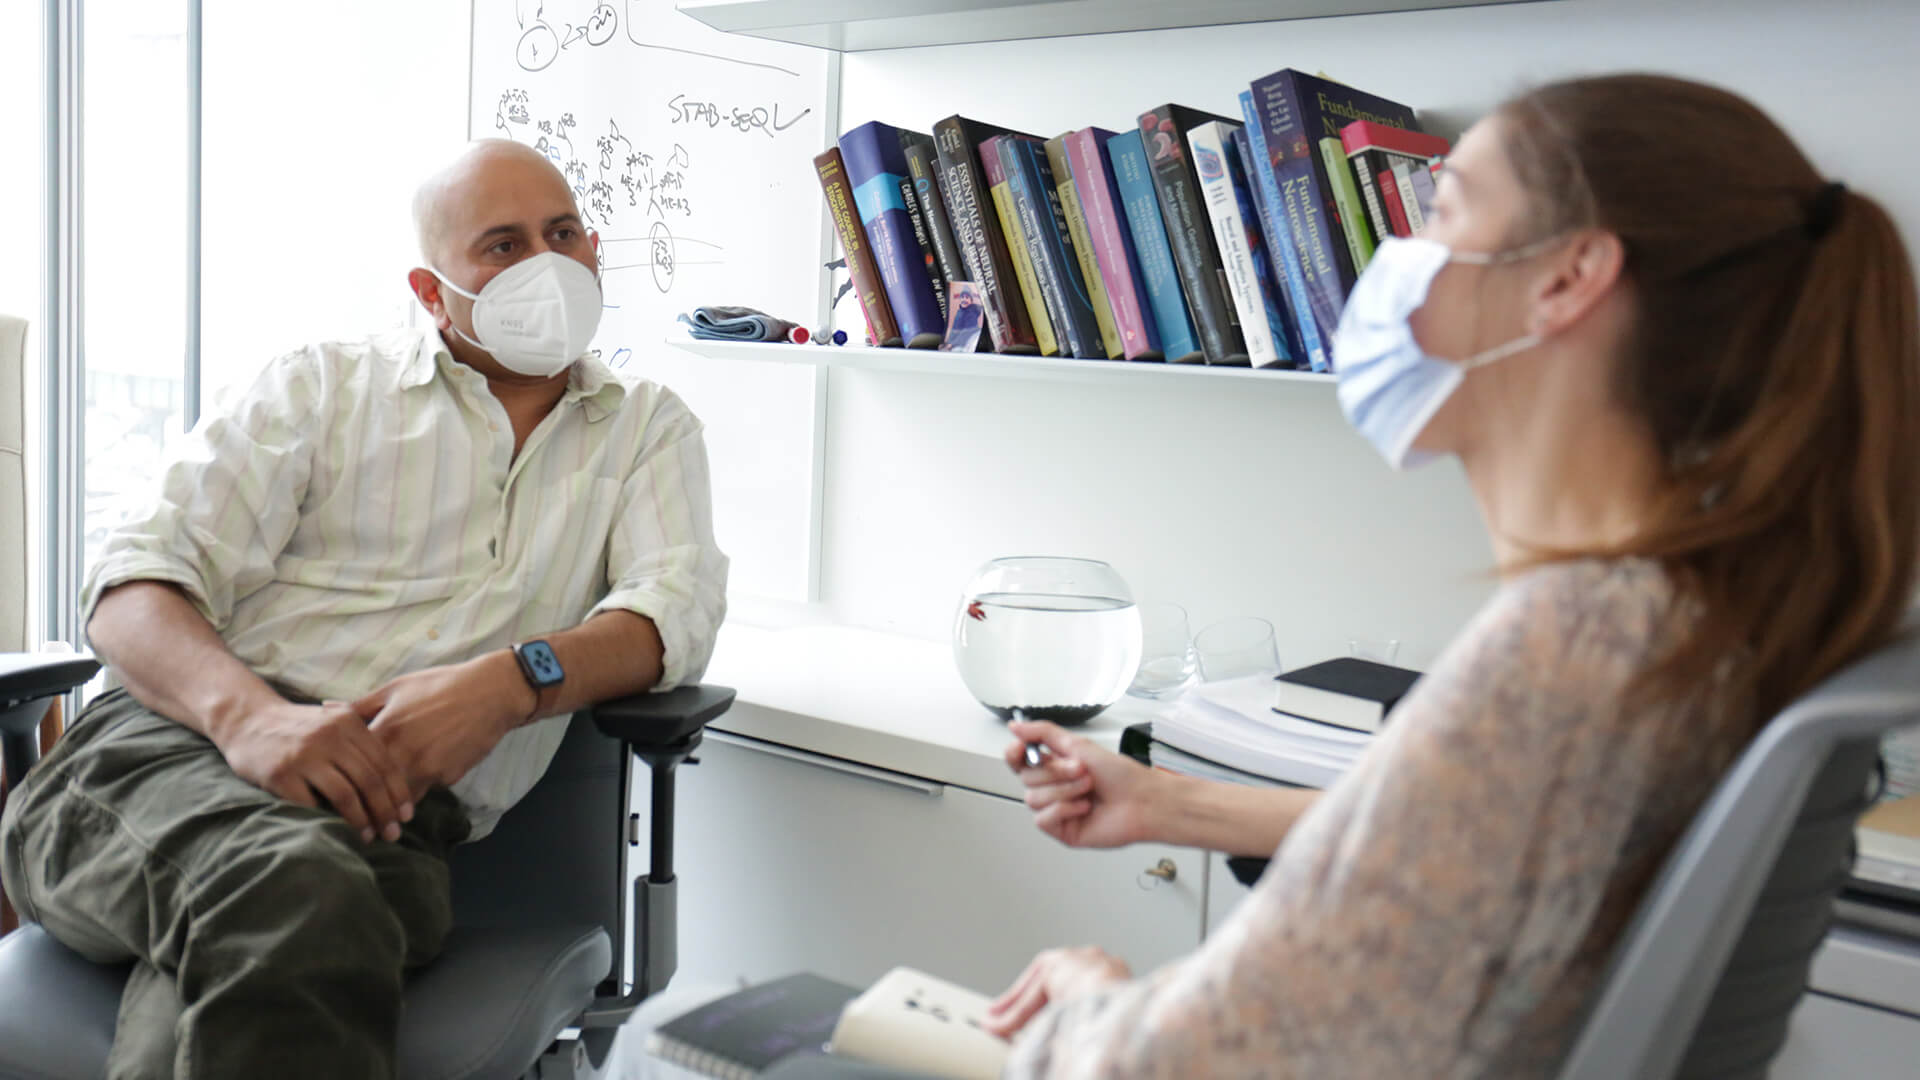 A man and woman wearing masks sit in an office chatting.